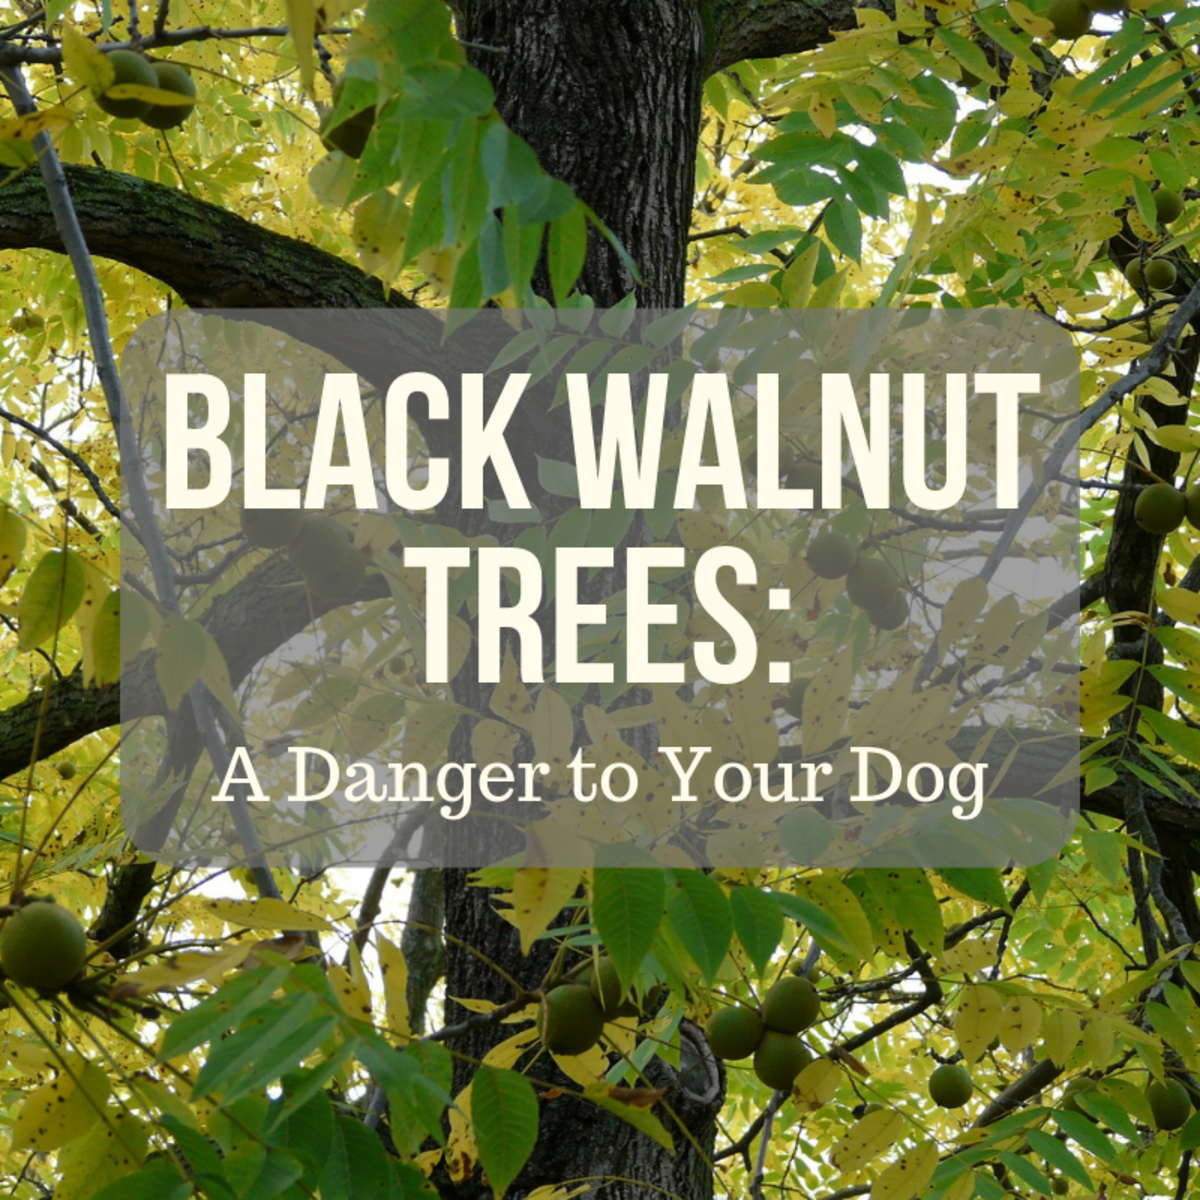 Black Walnut Trees Can Poison Your Dog